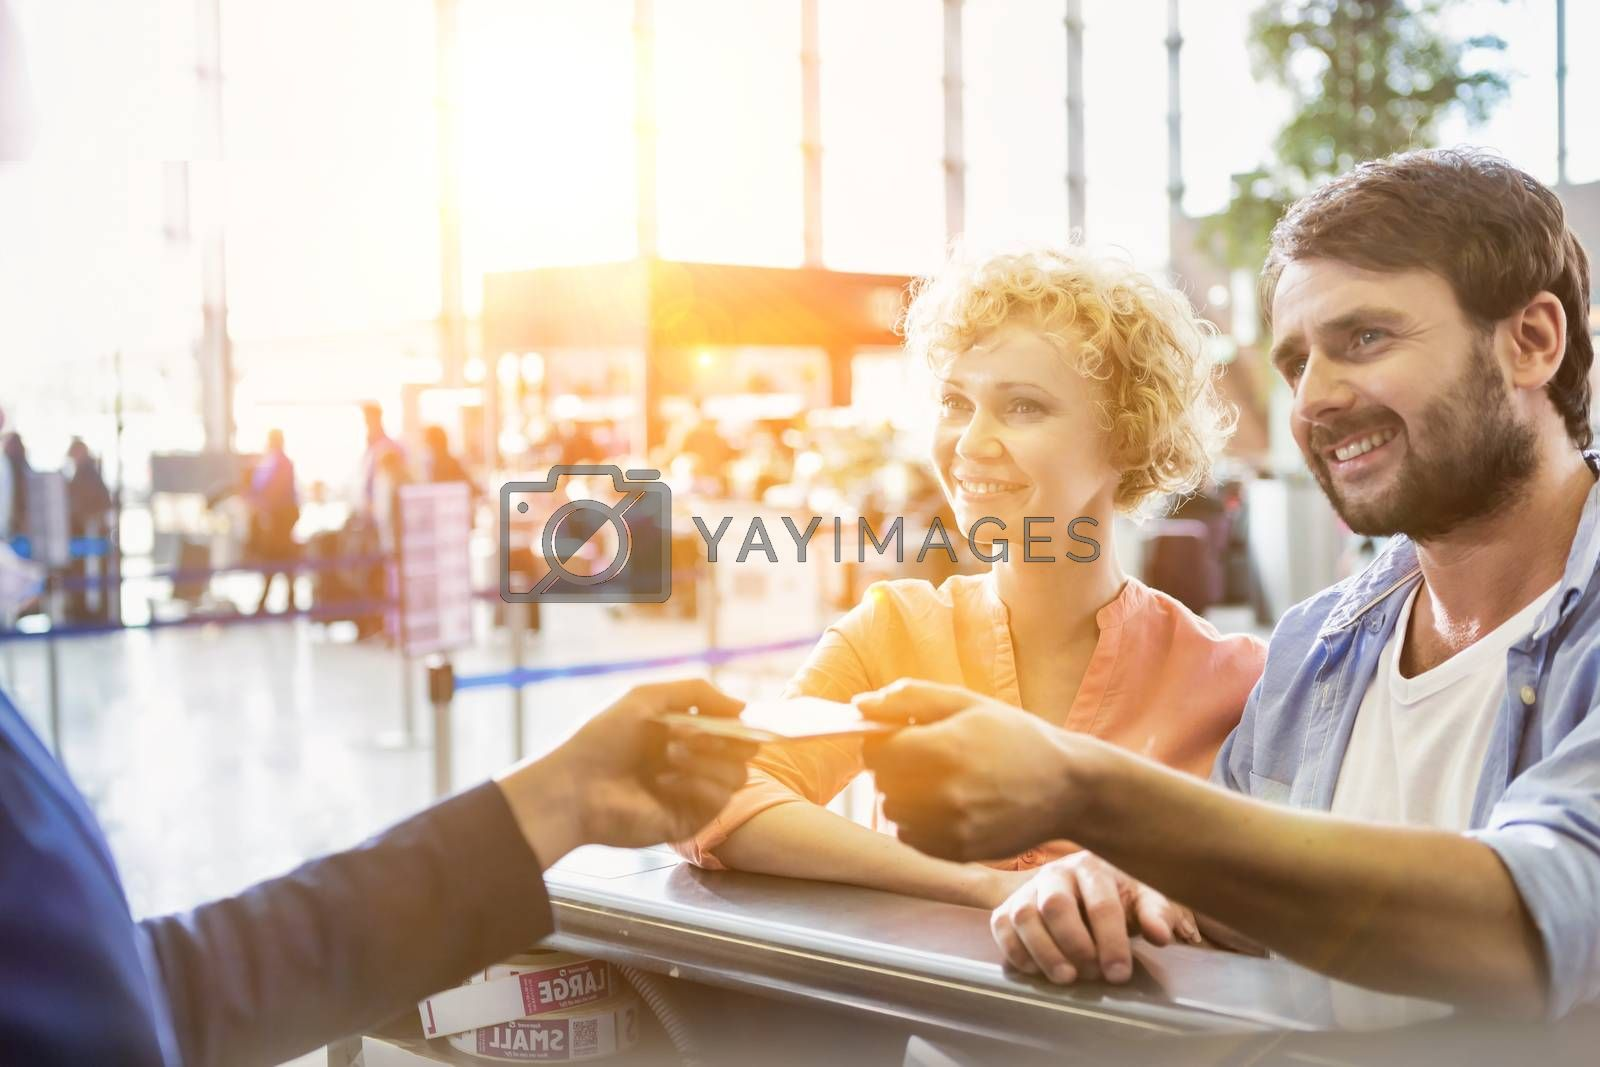 Portrait of man giving passport to passenger service agent to get his boarding pass in airport